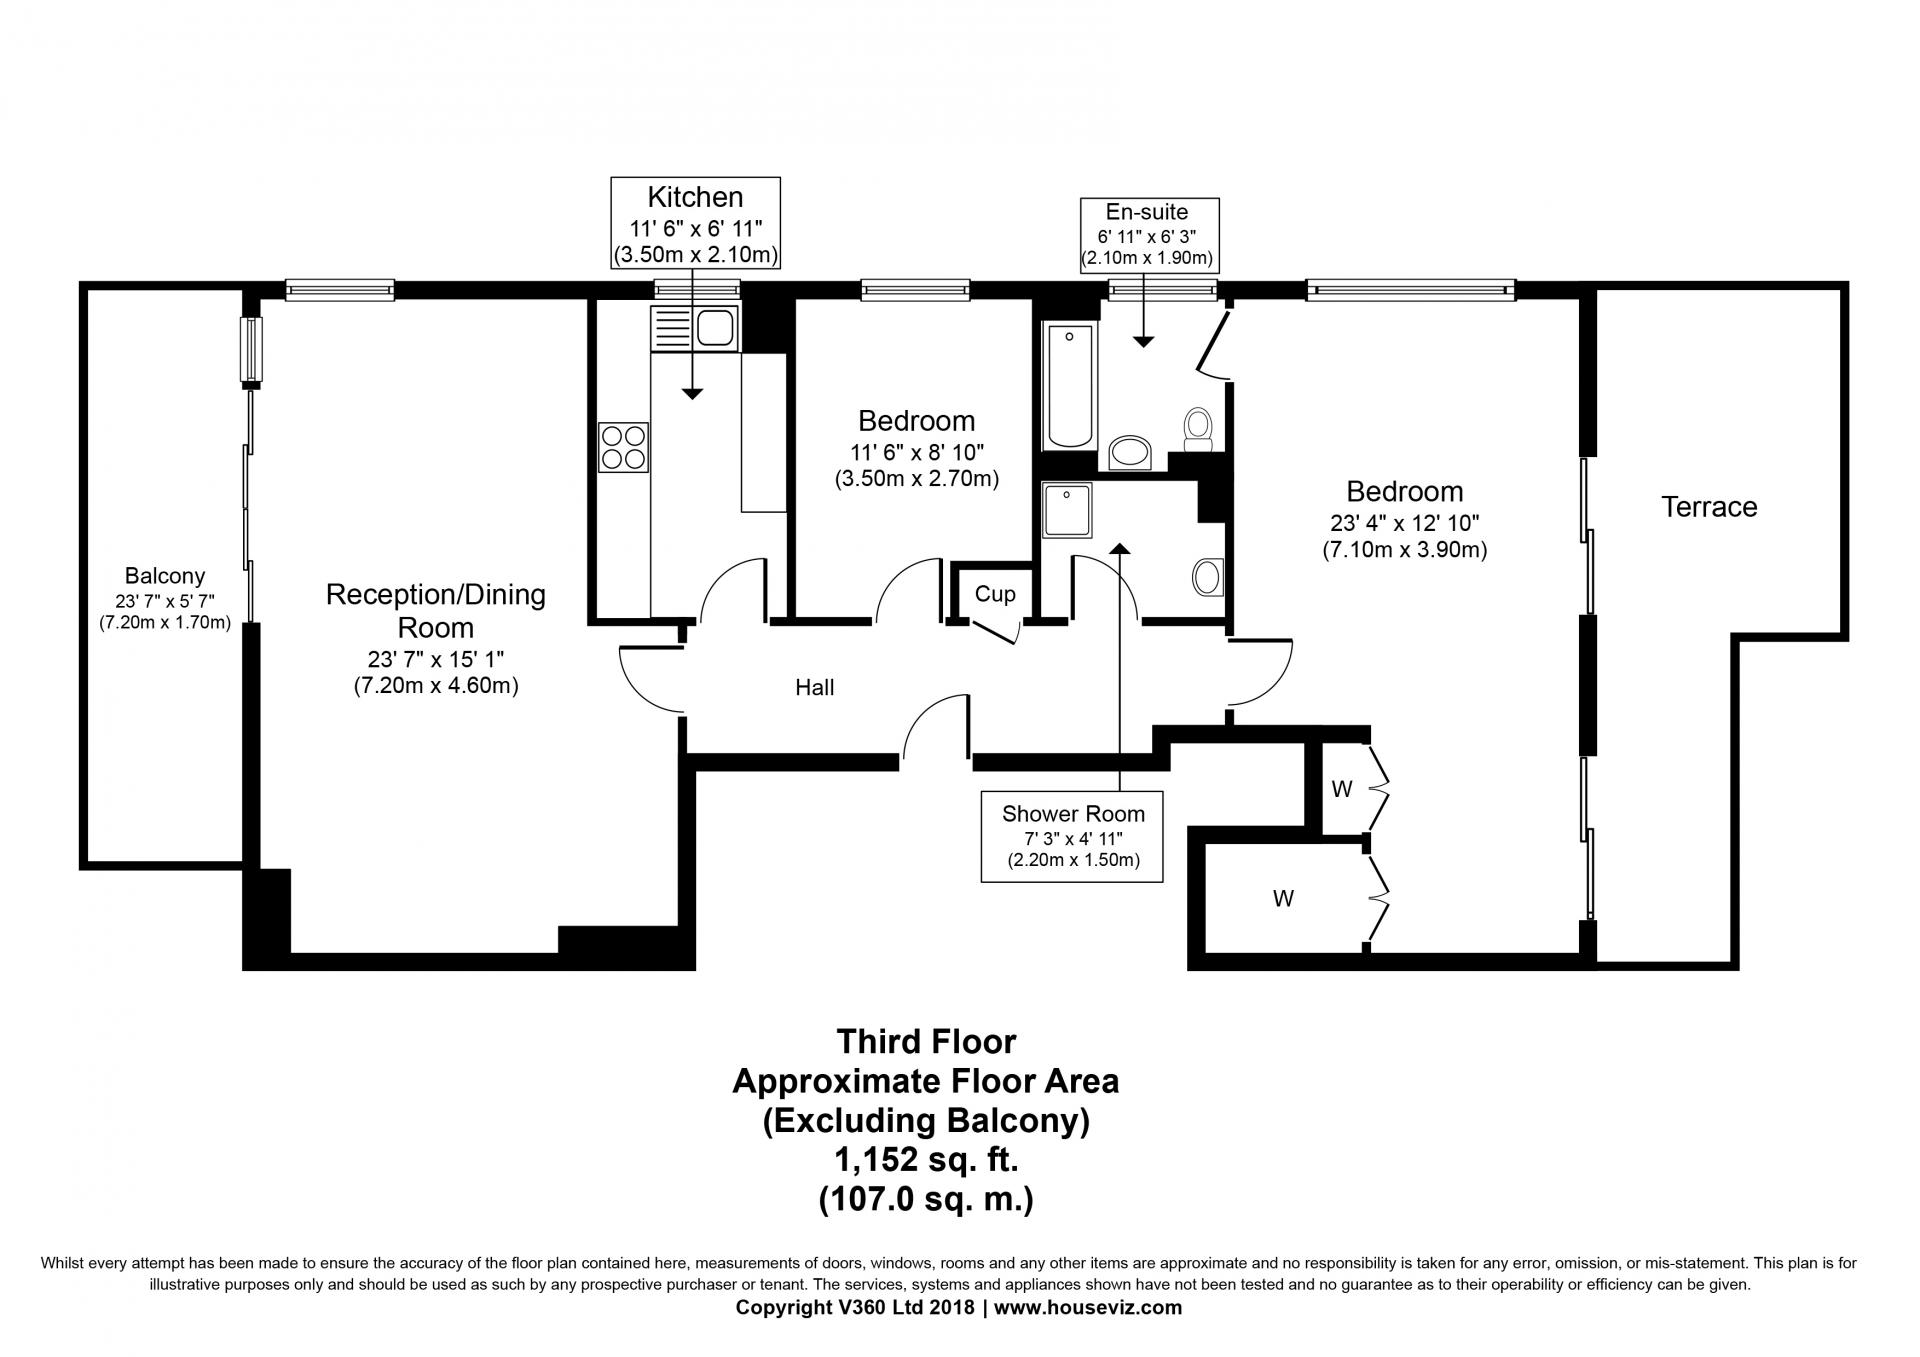 Floor plans at the Hyde Park Gate Apartments